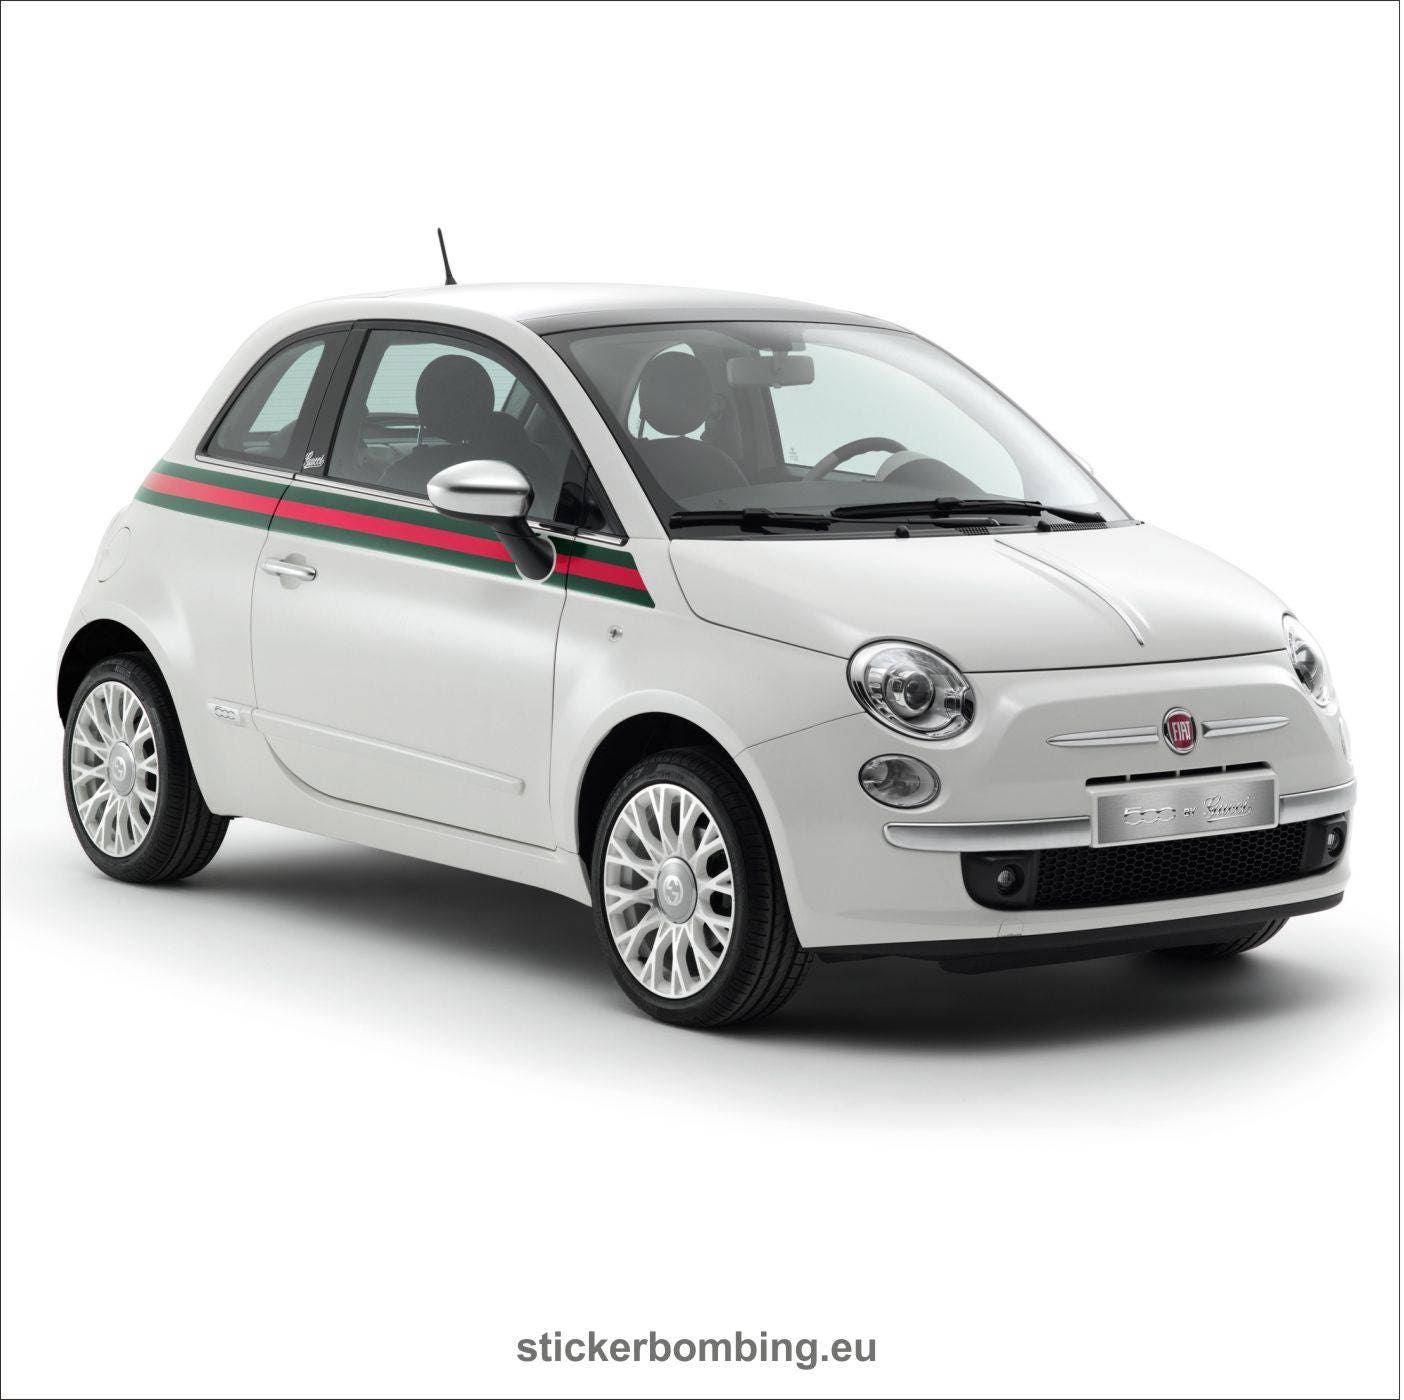 fiat 500 graphics kit decals gucci edition etsy. Black Bedroom Furniture Sets. Home Design Ideas